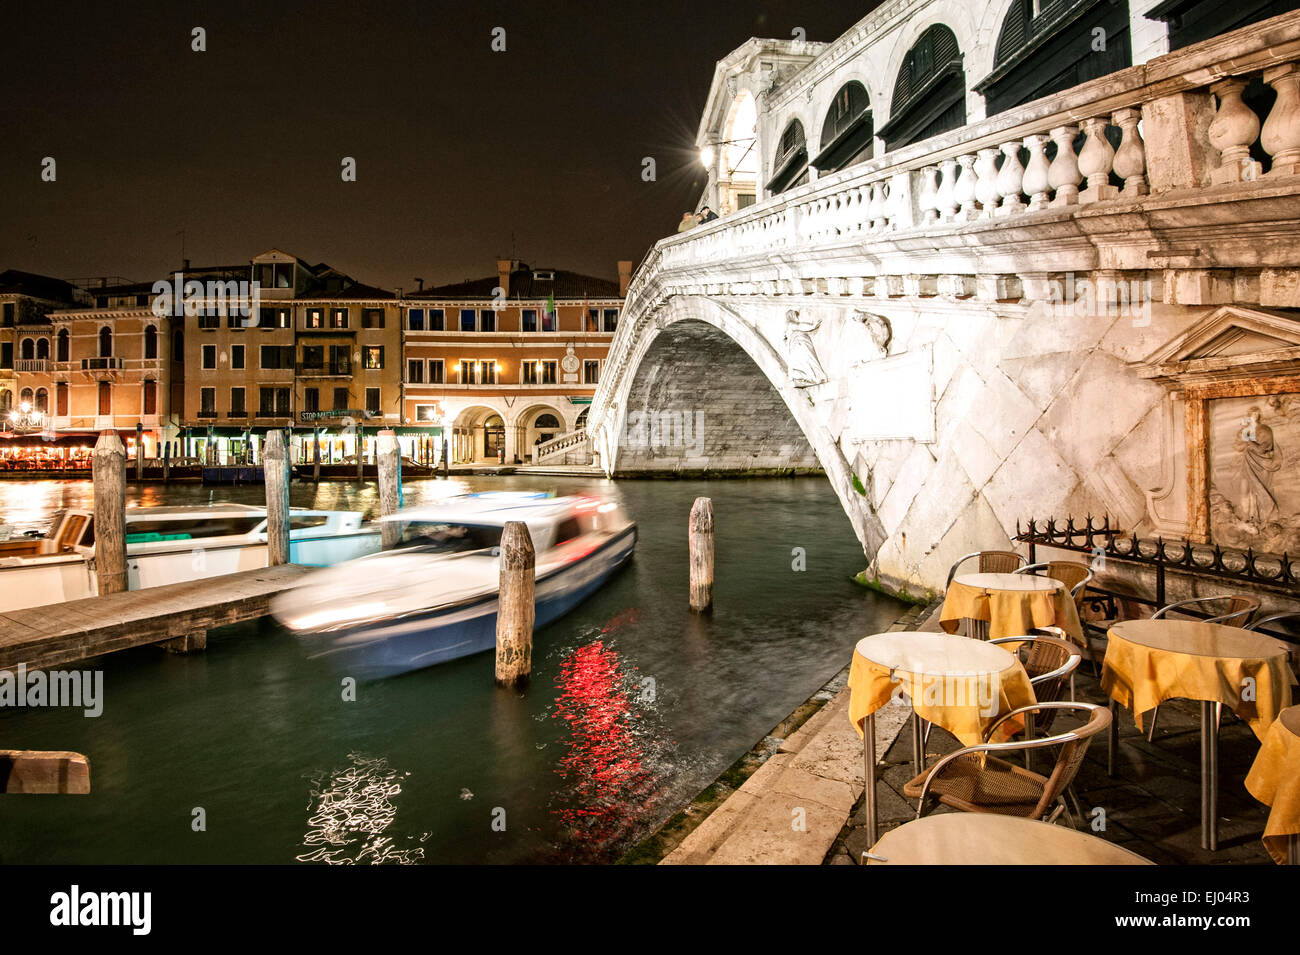 Pier with boat on the Grand Canal at the Rialto Bridge at night. - Stock Image